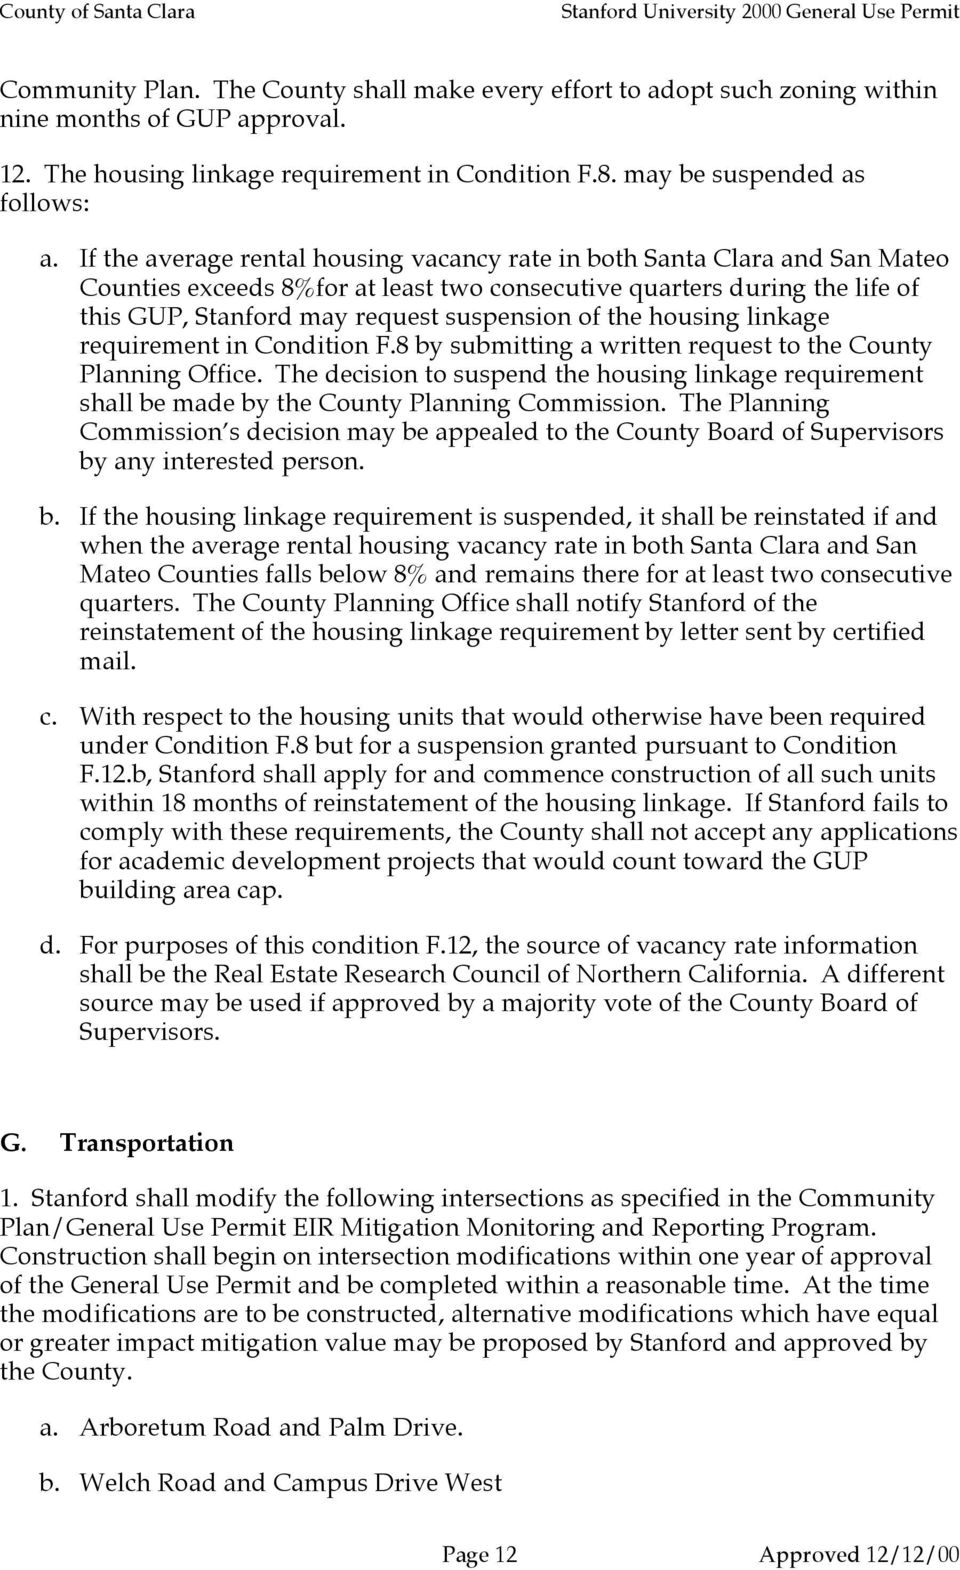 the housing linkage requirement in Condition F.8 by submitting a written request to the County Planning Office.